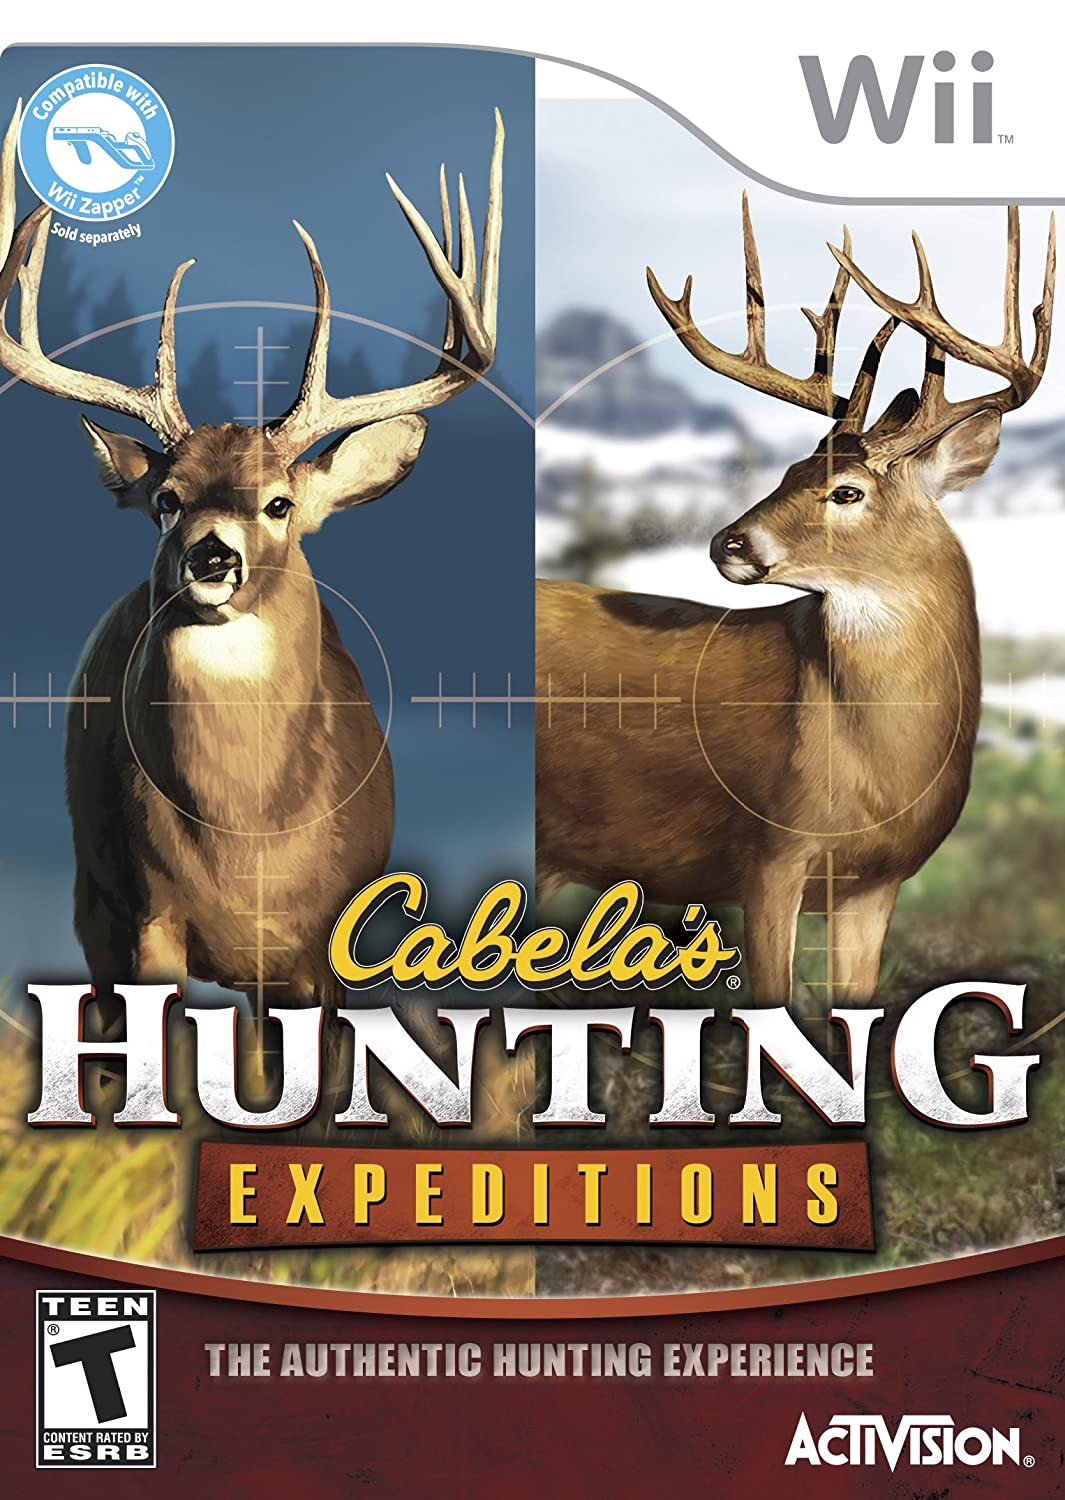 Cabelas Hunting Expeditions - Wii: Wii: Computer and Video